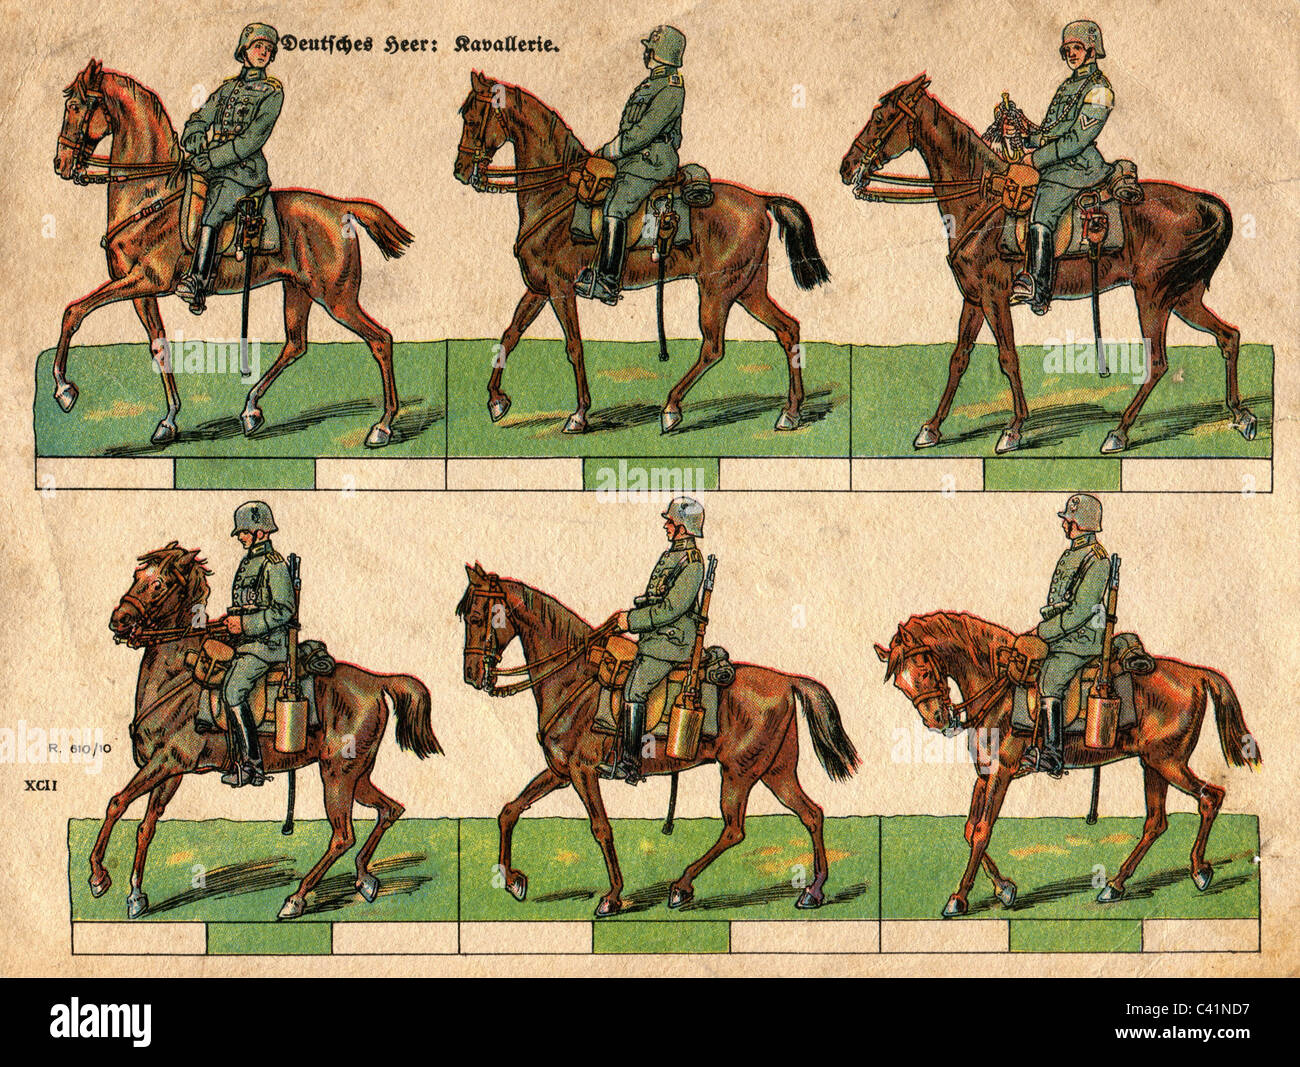 military, Germany, Reichswehr, cavalry uniforms, illustration, colour print, circa 1930, Additional-Rights-Clearences - Stock Image